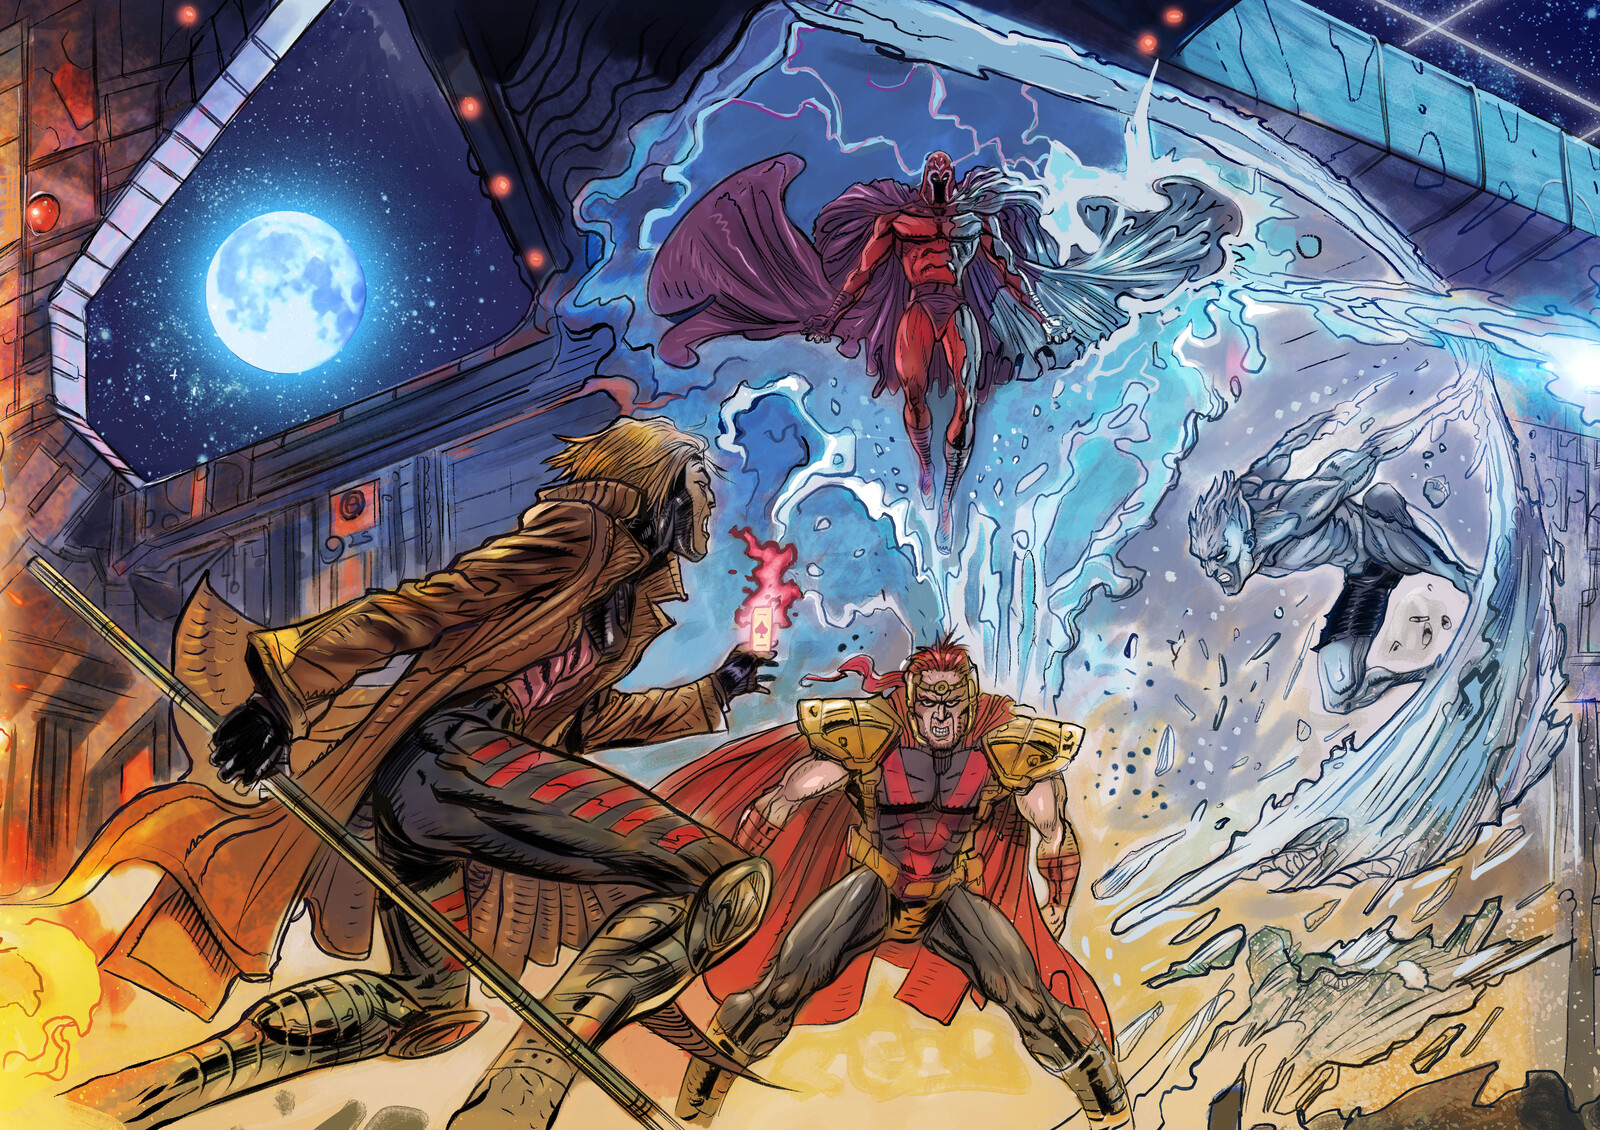 X-Men - Mutant Insurrection: Magneto Showdown (panel 2 of 4)